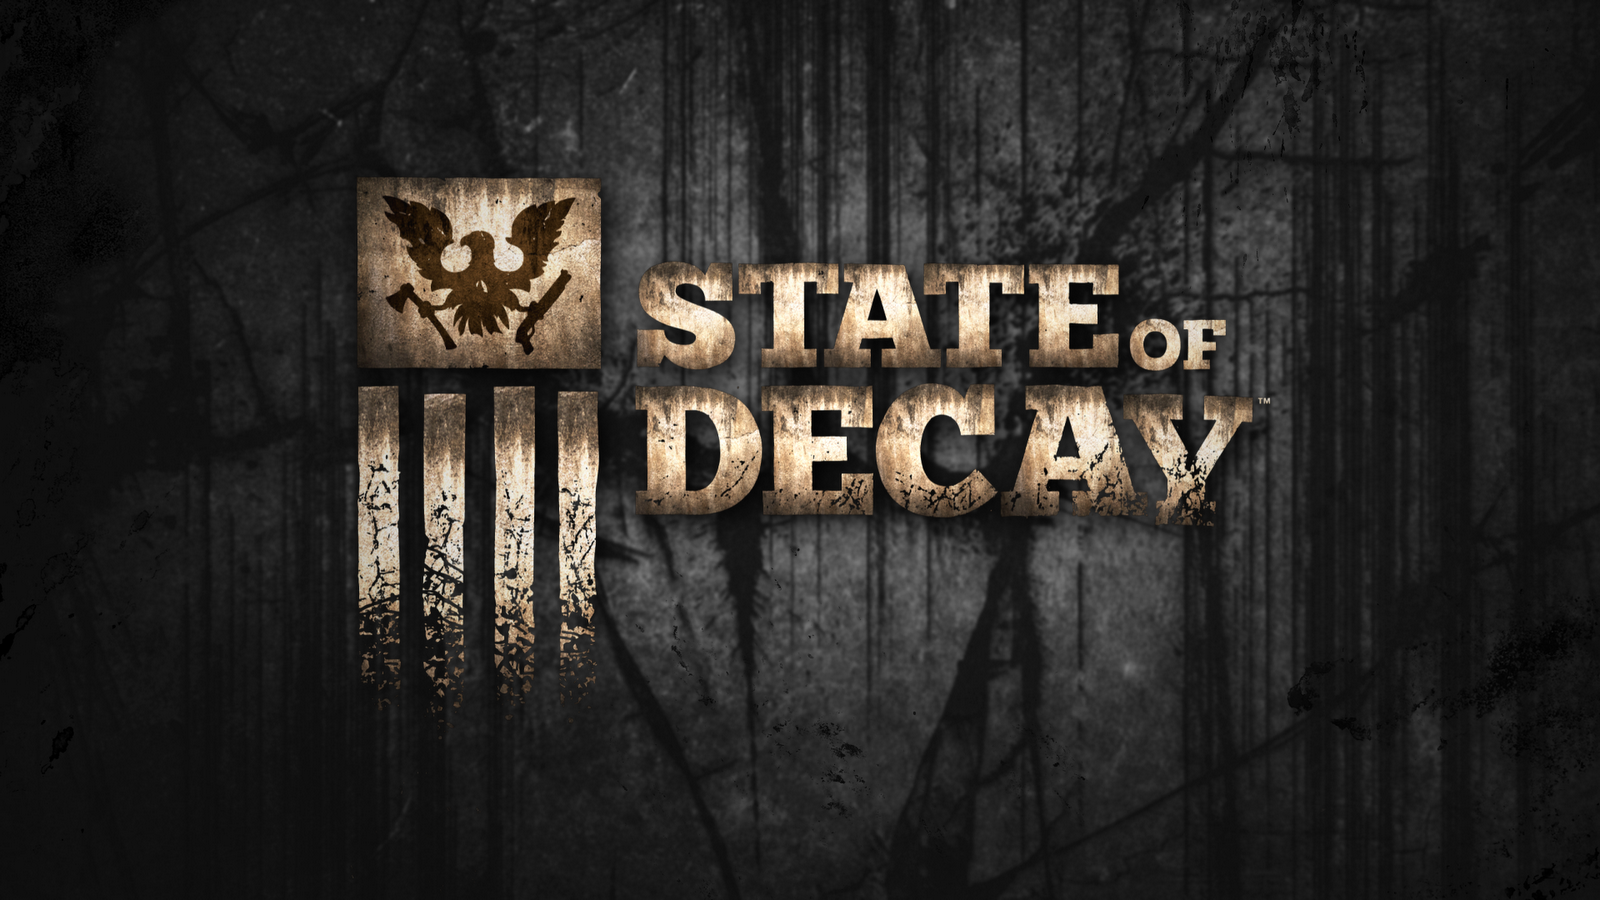 State-of-Decay-Wallpaper.png